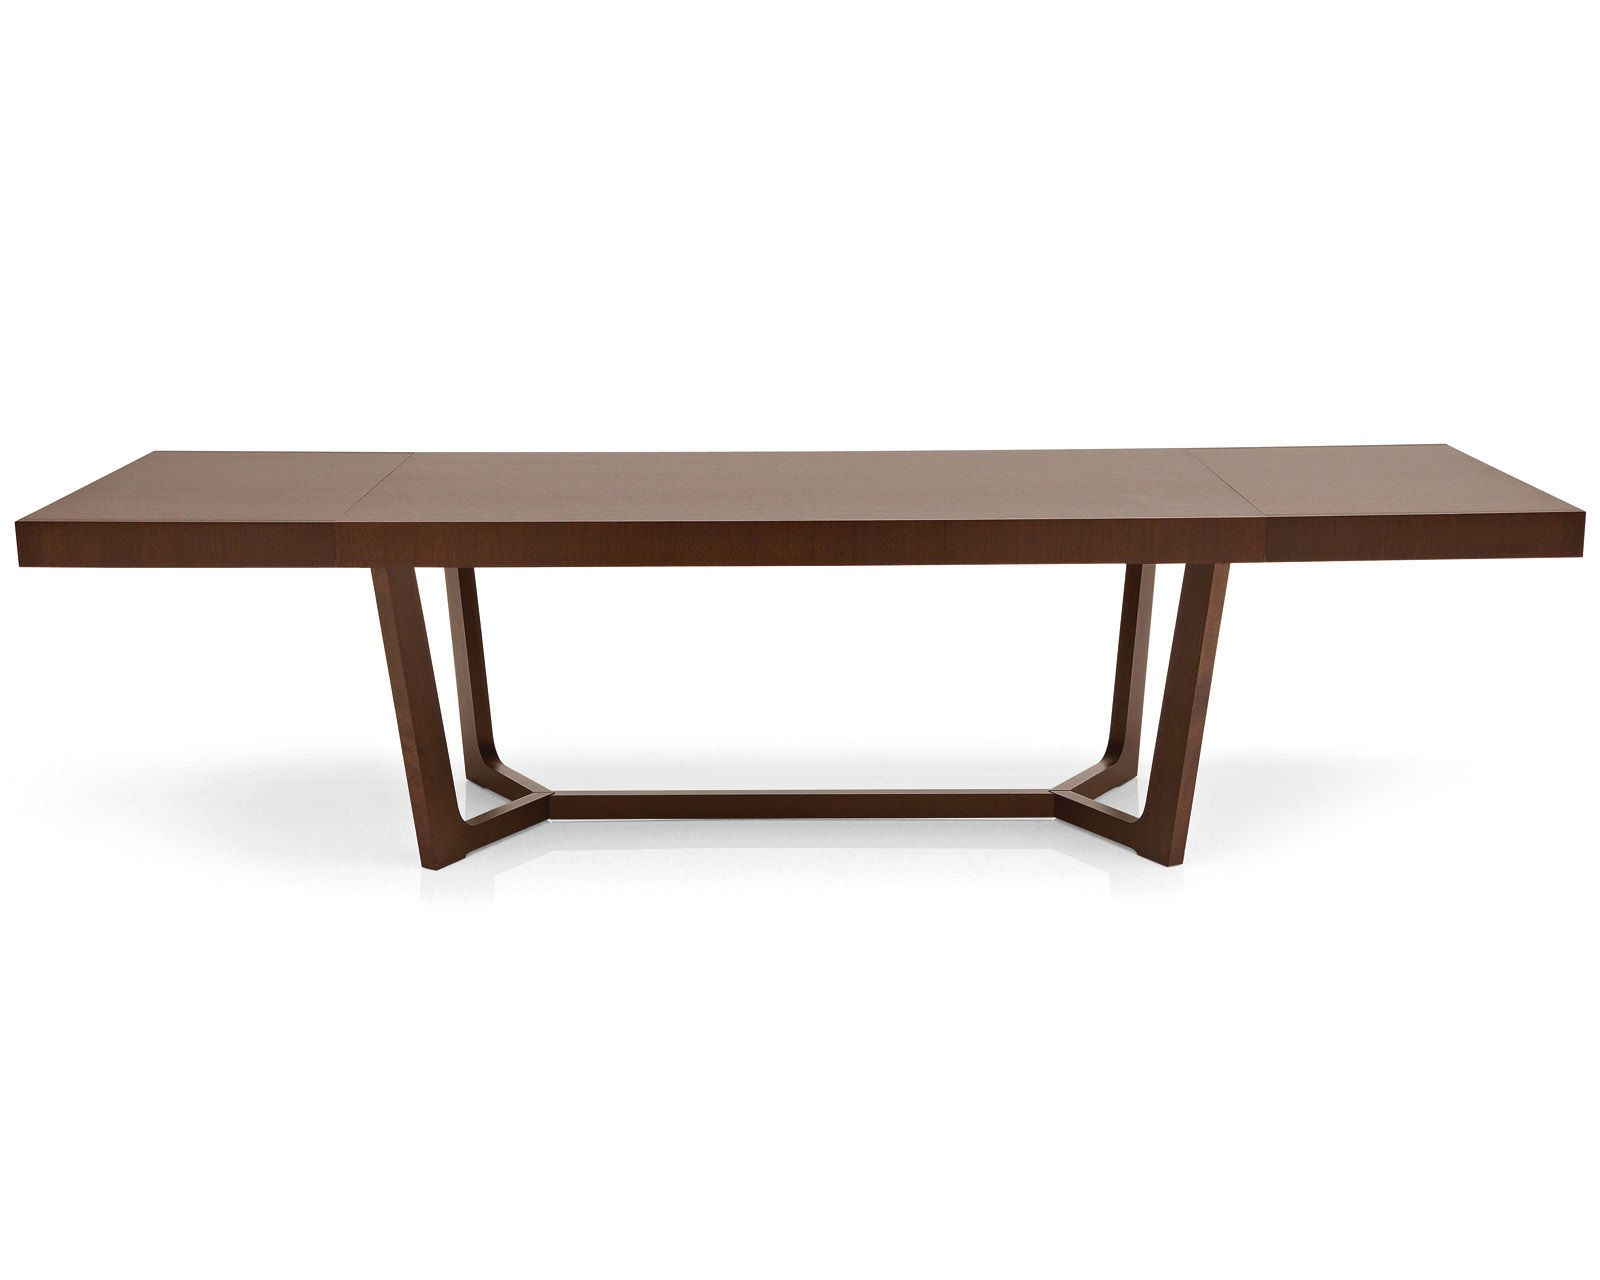 Calligaris Prince Extending Dining Table Seats Up To 12 Dining